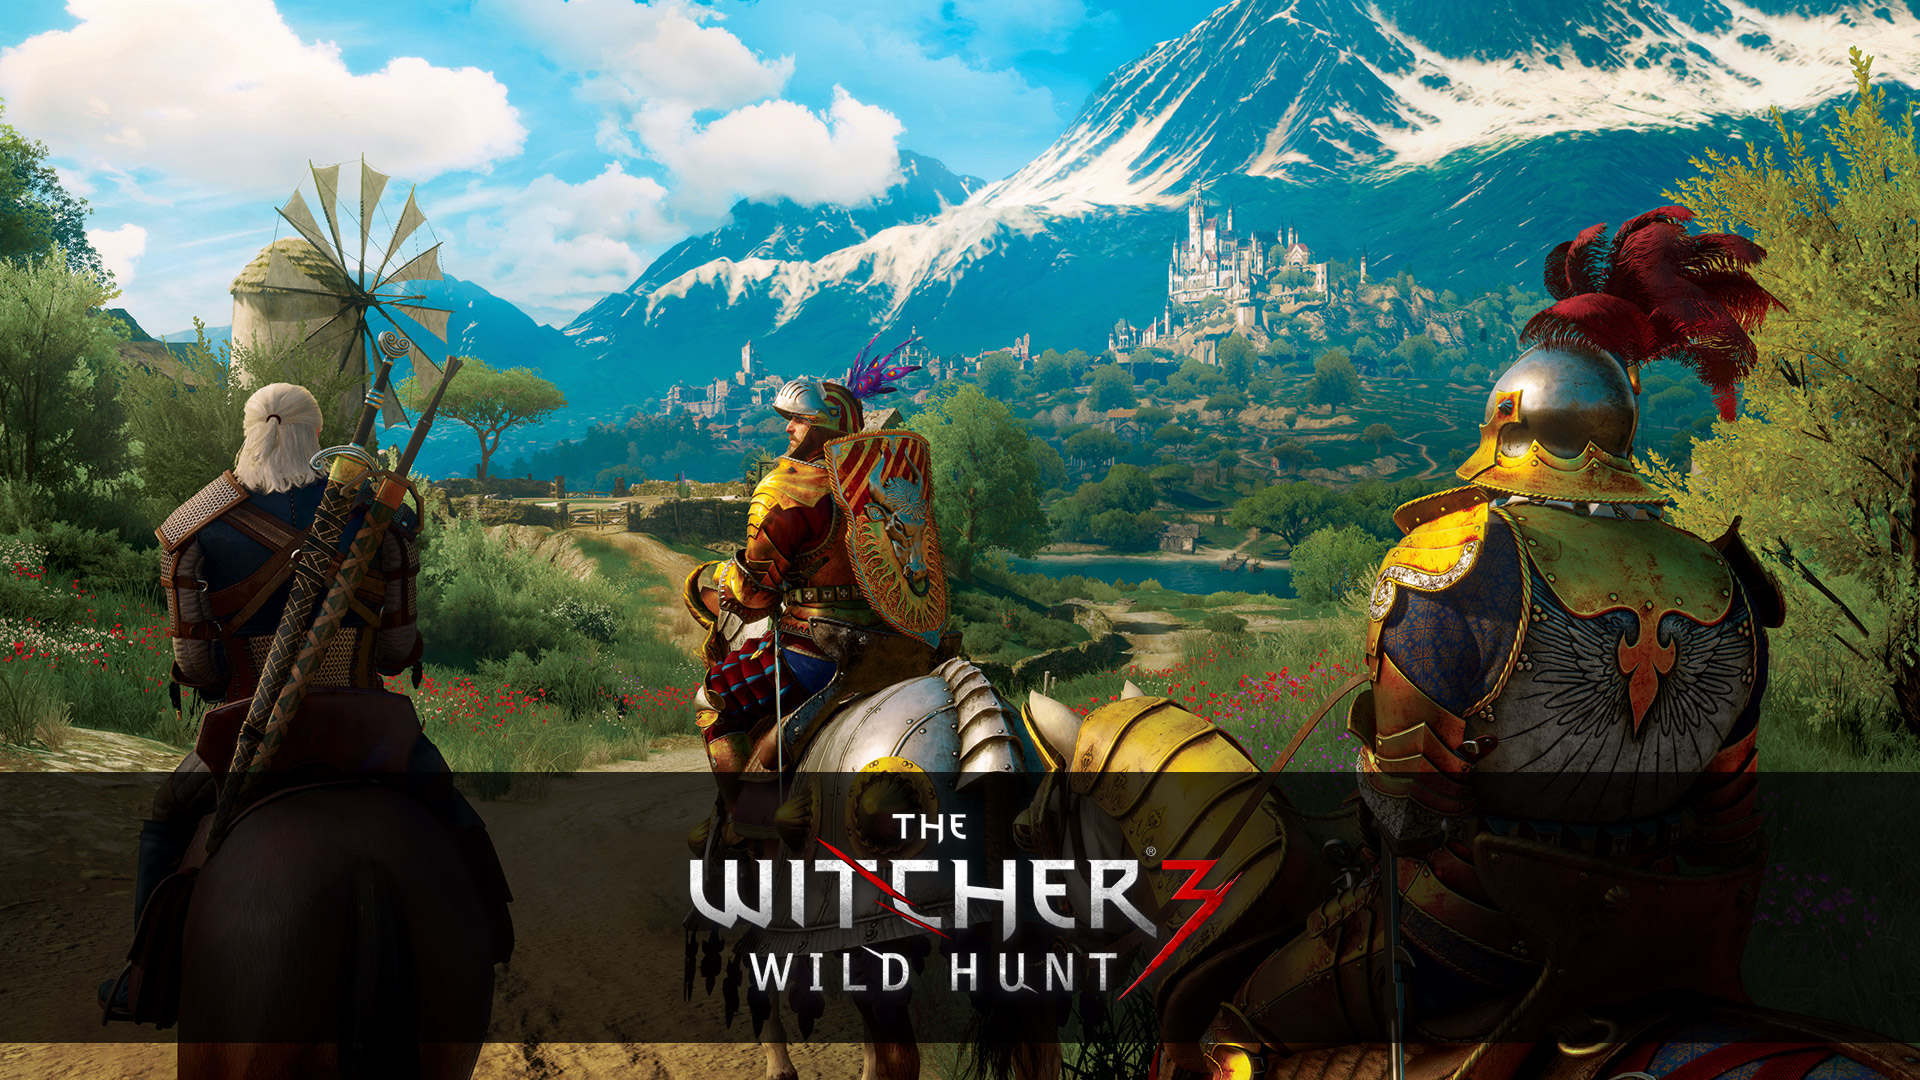 Free The Witcher 3 Wallpaper in 1920x1080